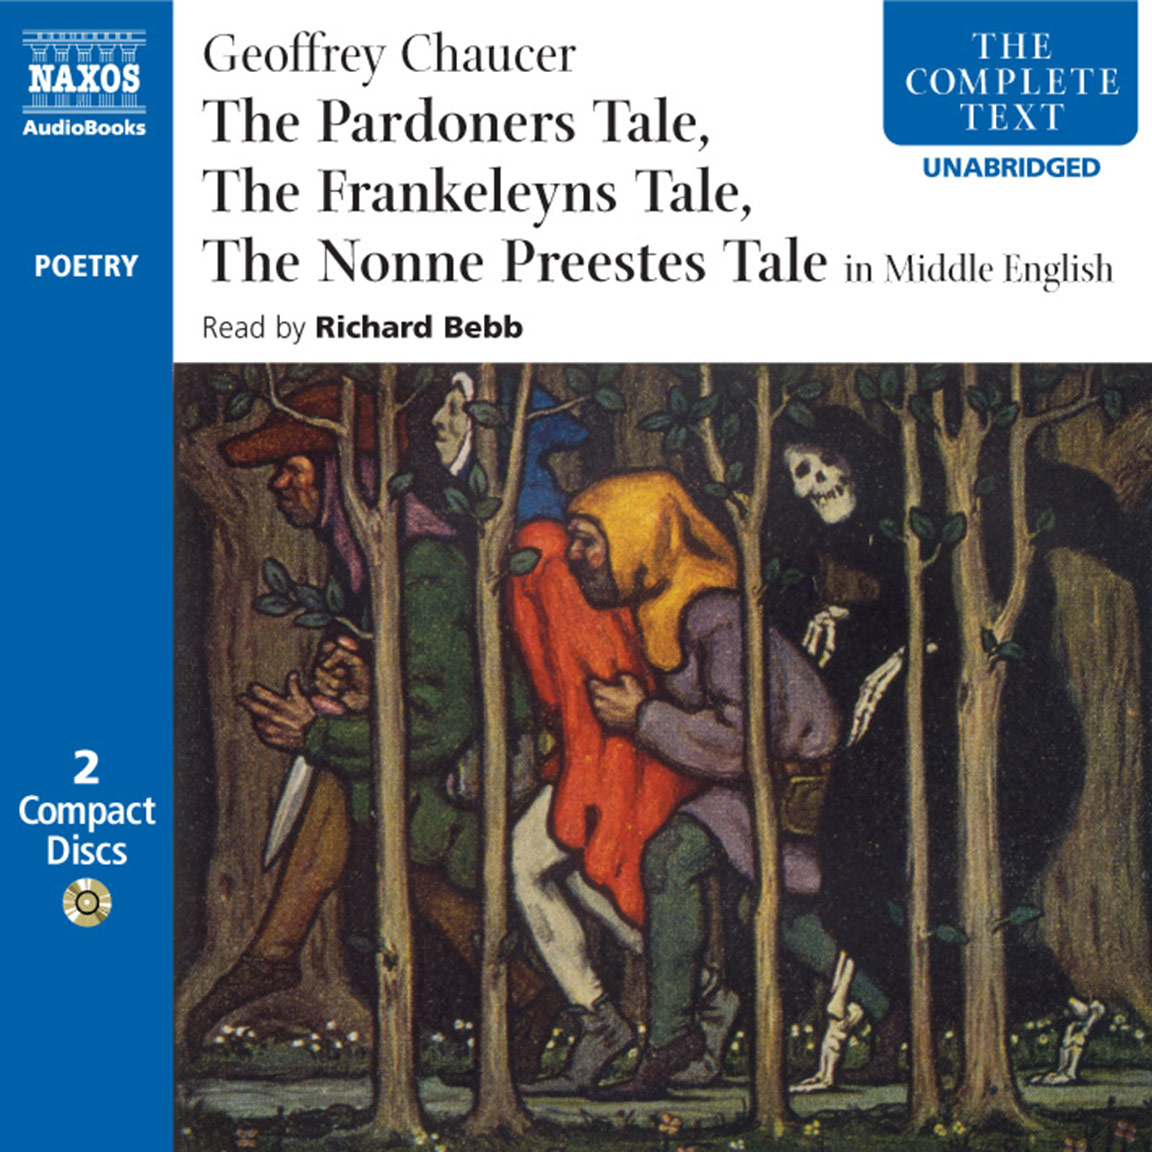 the consequences of greed in the pardoners tale a novel by geoffrey chaucer